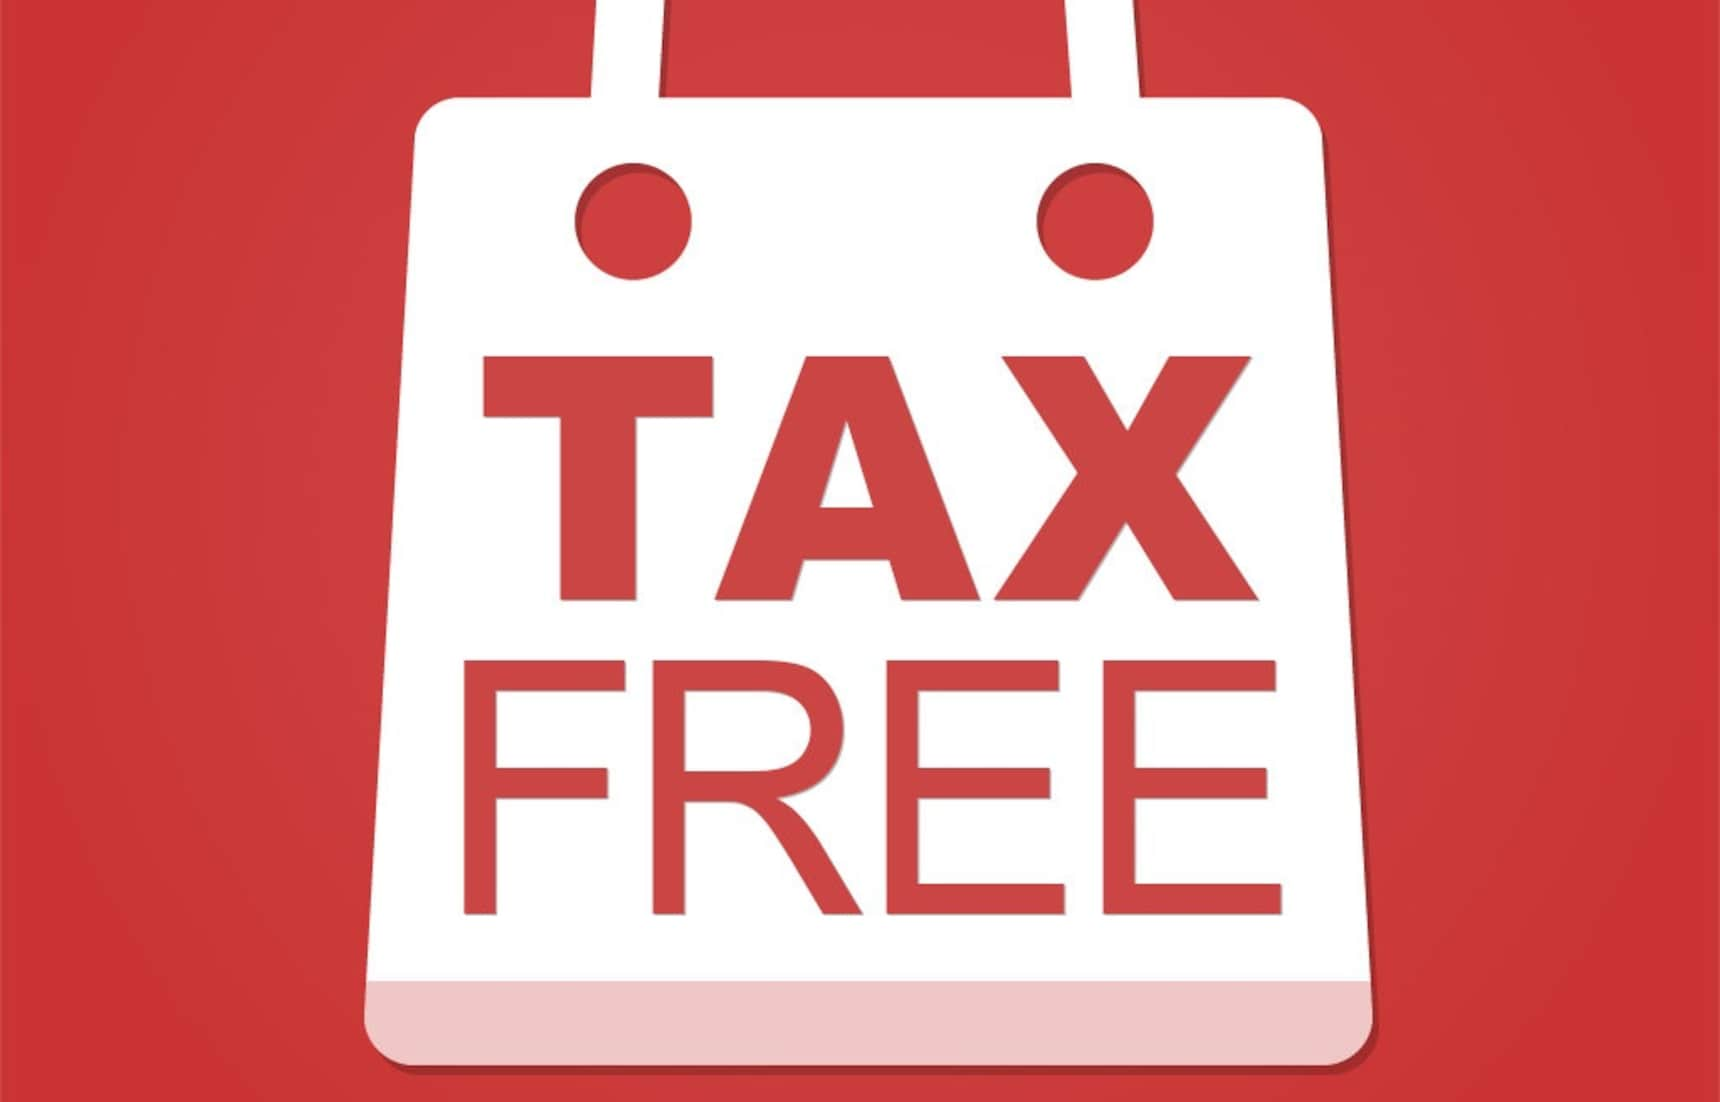 5 Tax-Free Shopping Facts